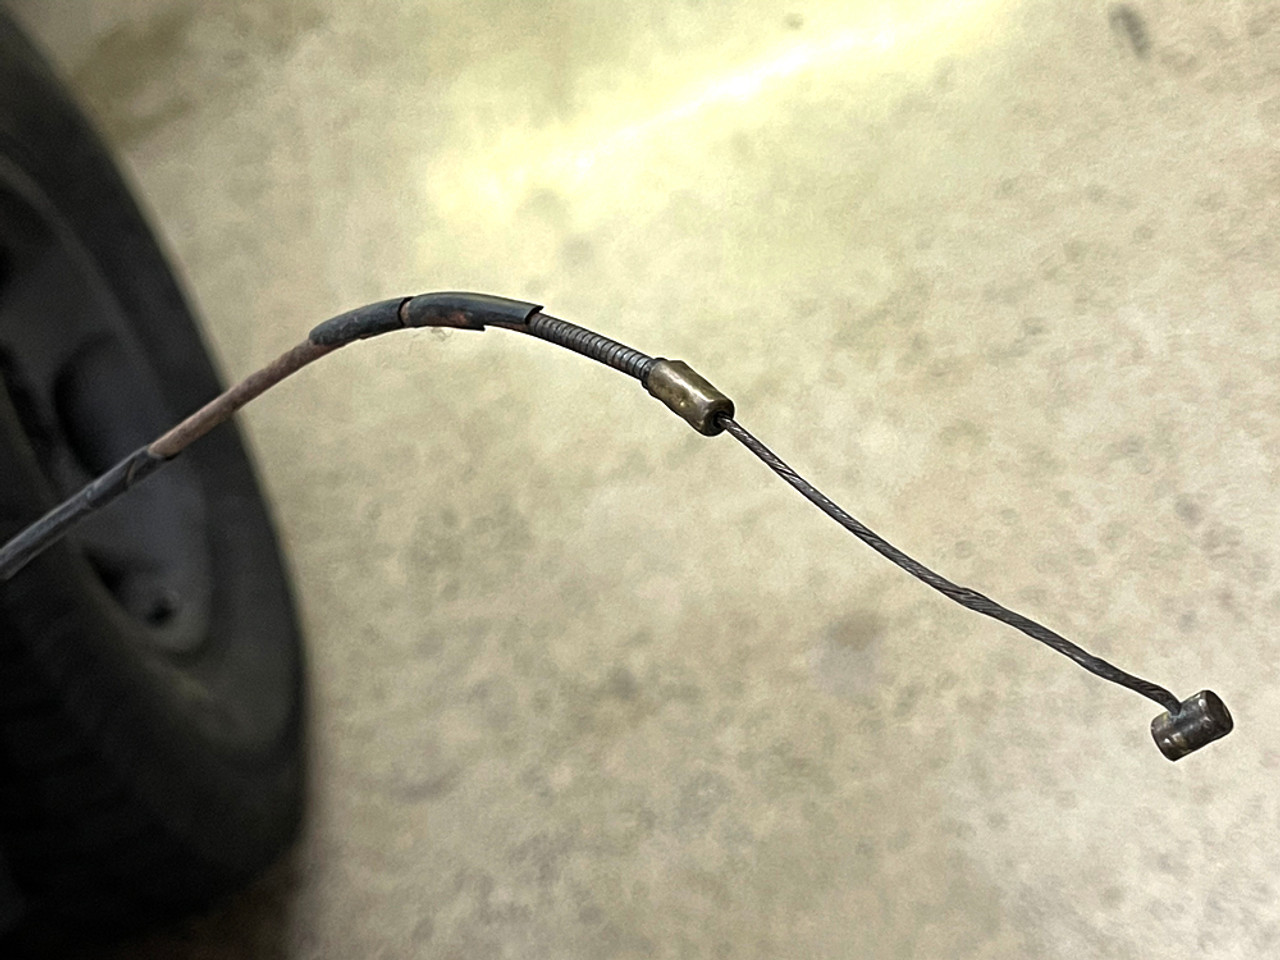 60 Series Carburetor Choke Cable Assembly (CCA-1) before its replaced